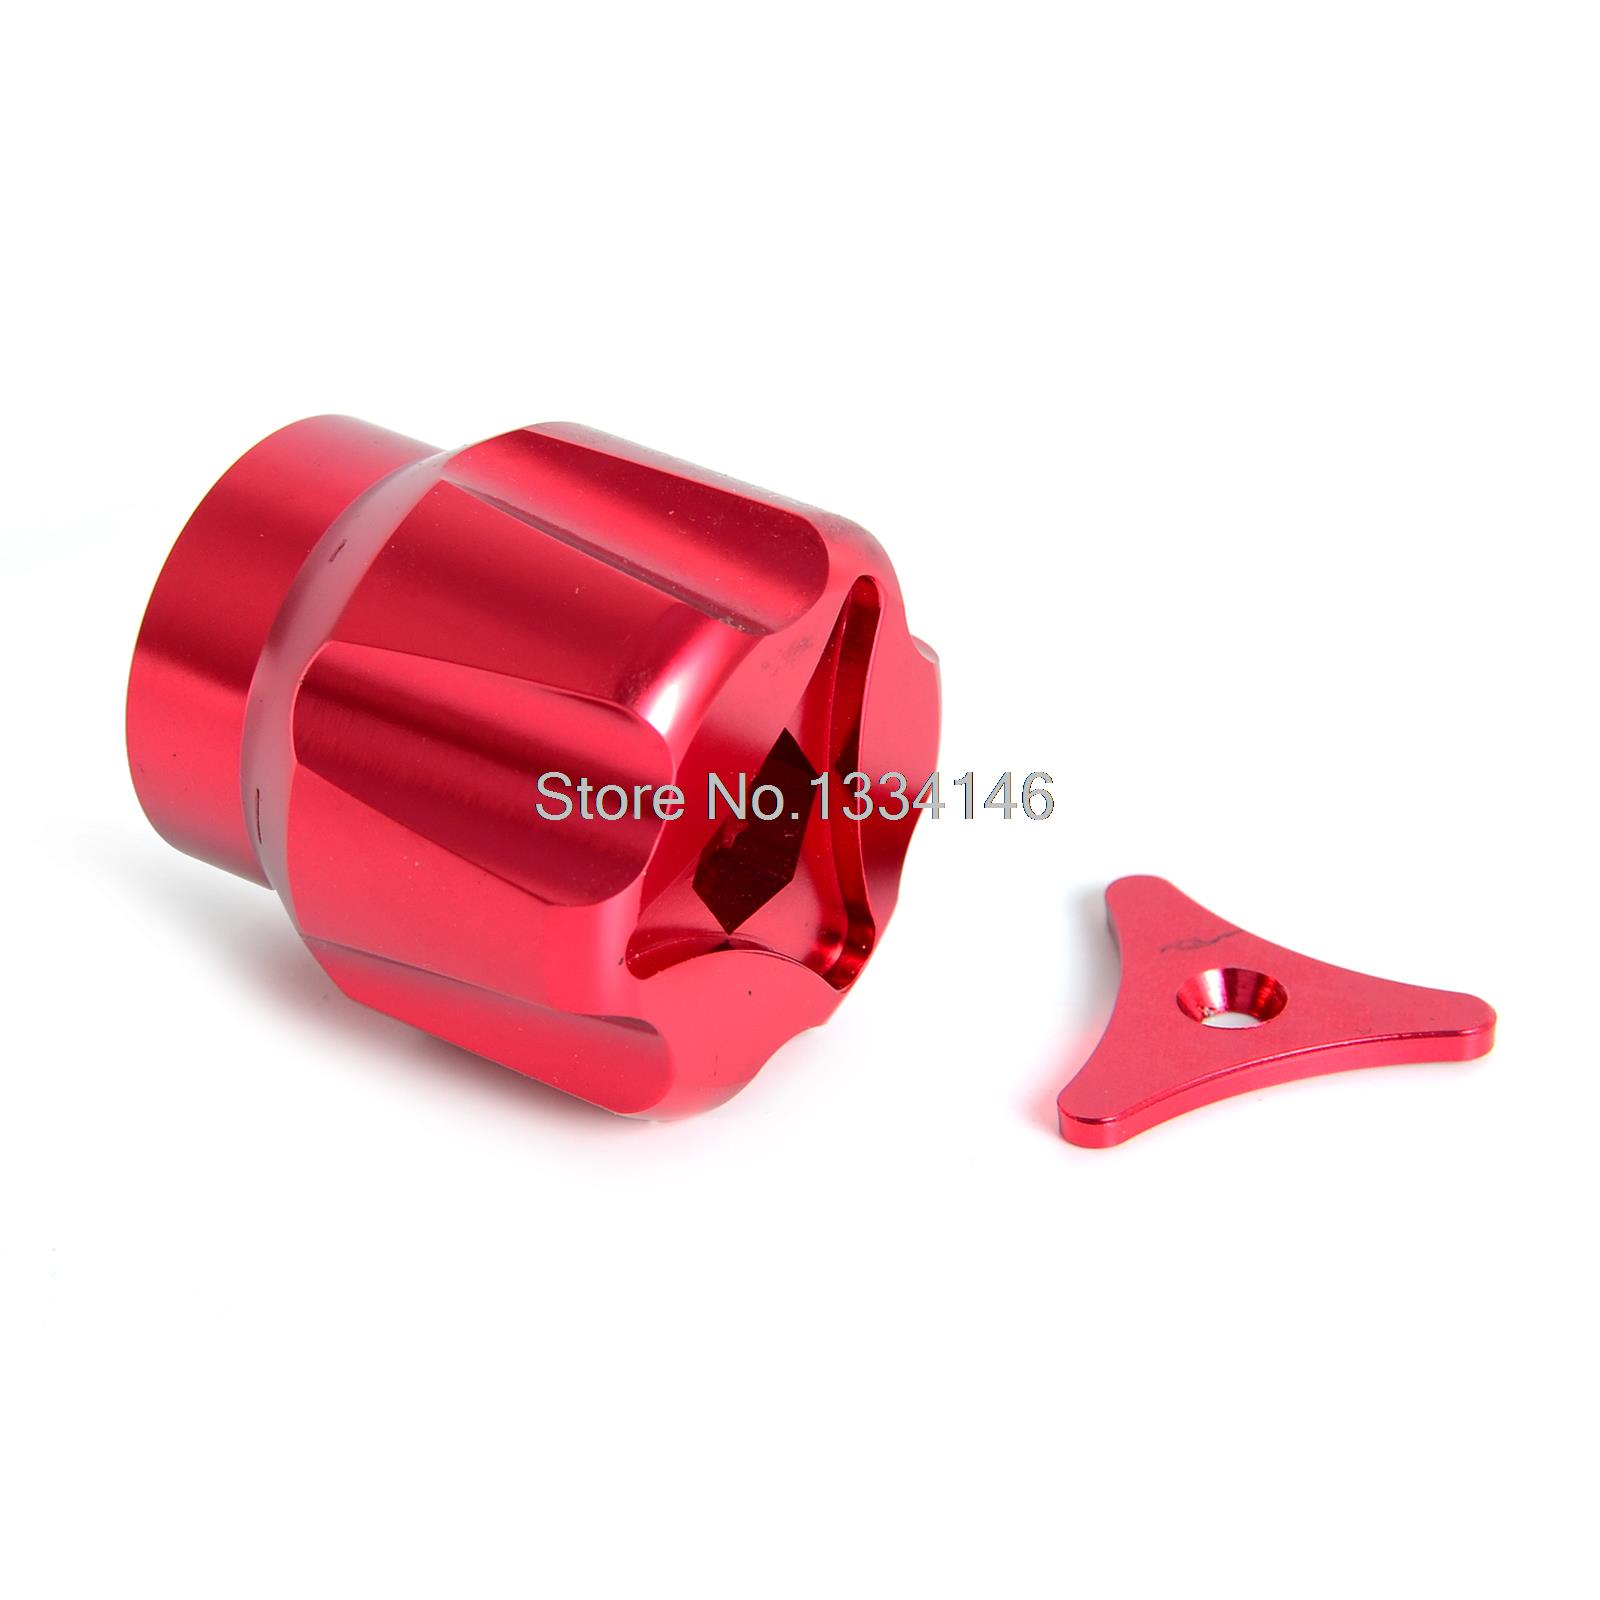 ФОТО Rear Shock Spring Preload Adjuster For For DUCATI DIAVEL 11-15 (Red)  Ducati  Multistrada 1200 ABS 2010-2014